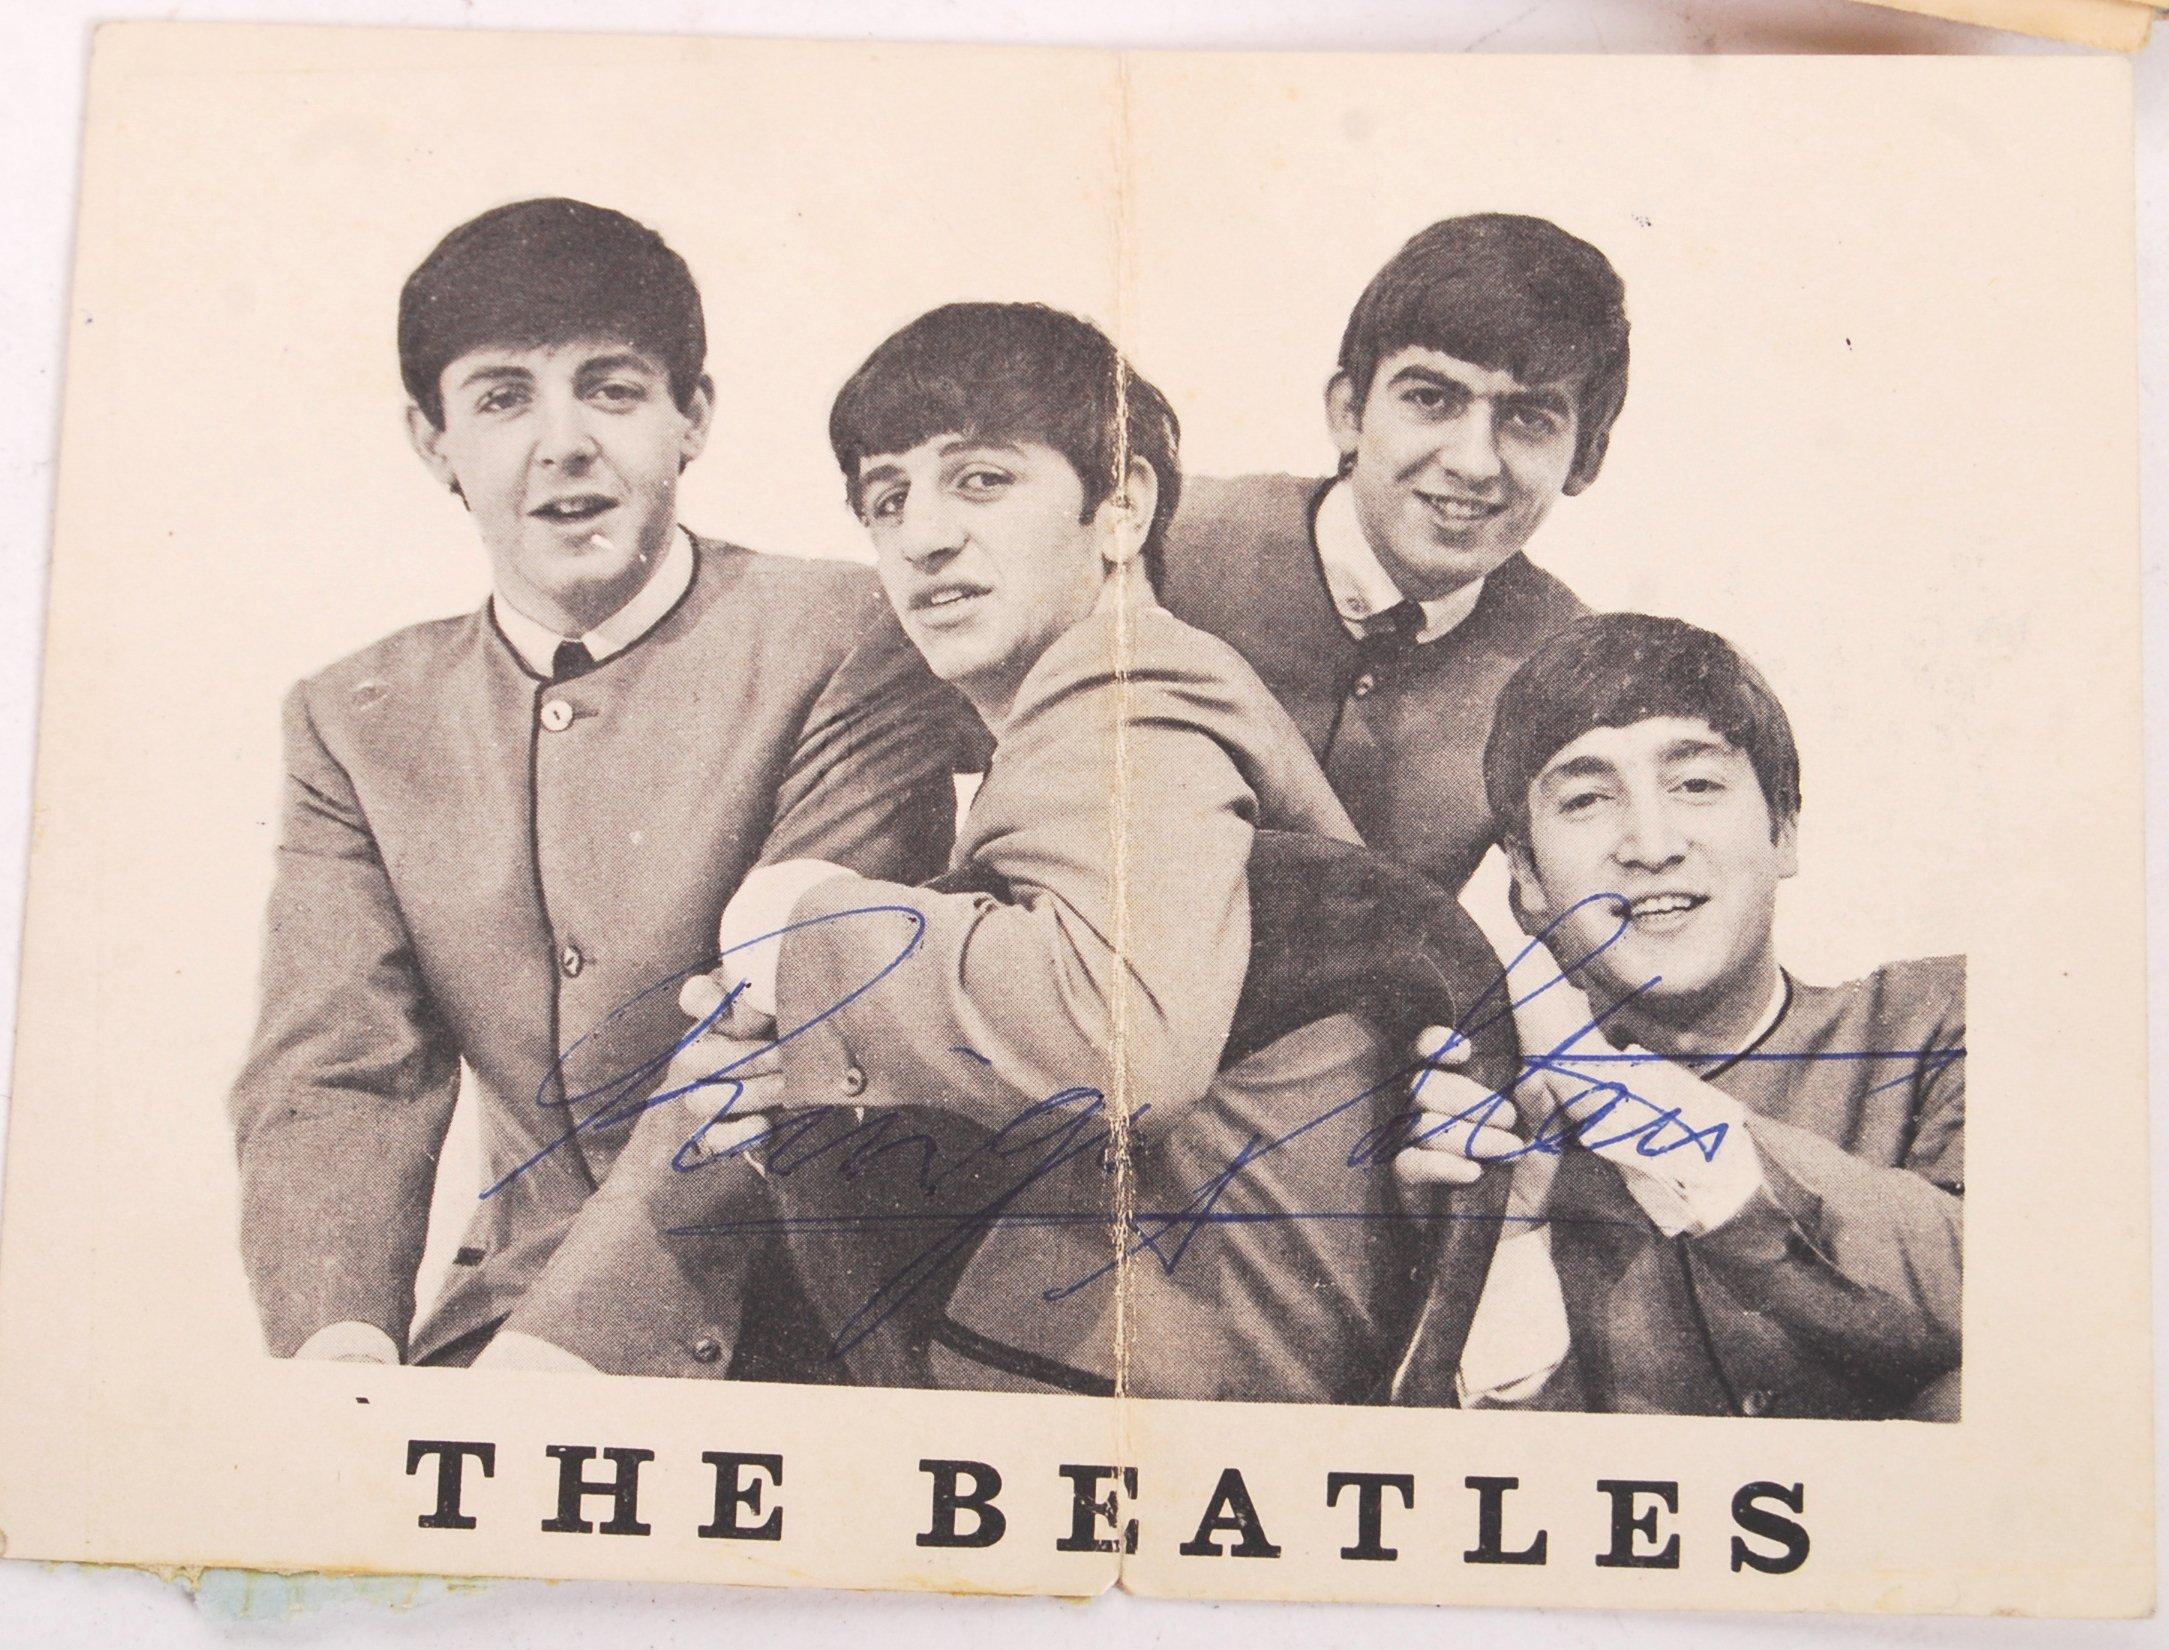 INCREDIBLY RARE PERSONAL BEATLES AUTOGRAPH COLLECT - Image 3 of 12